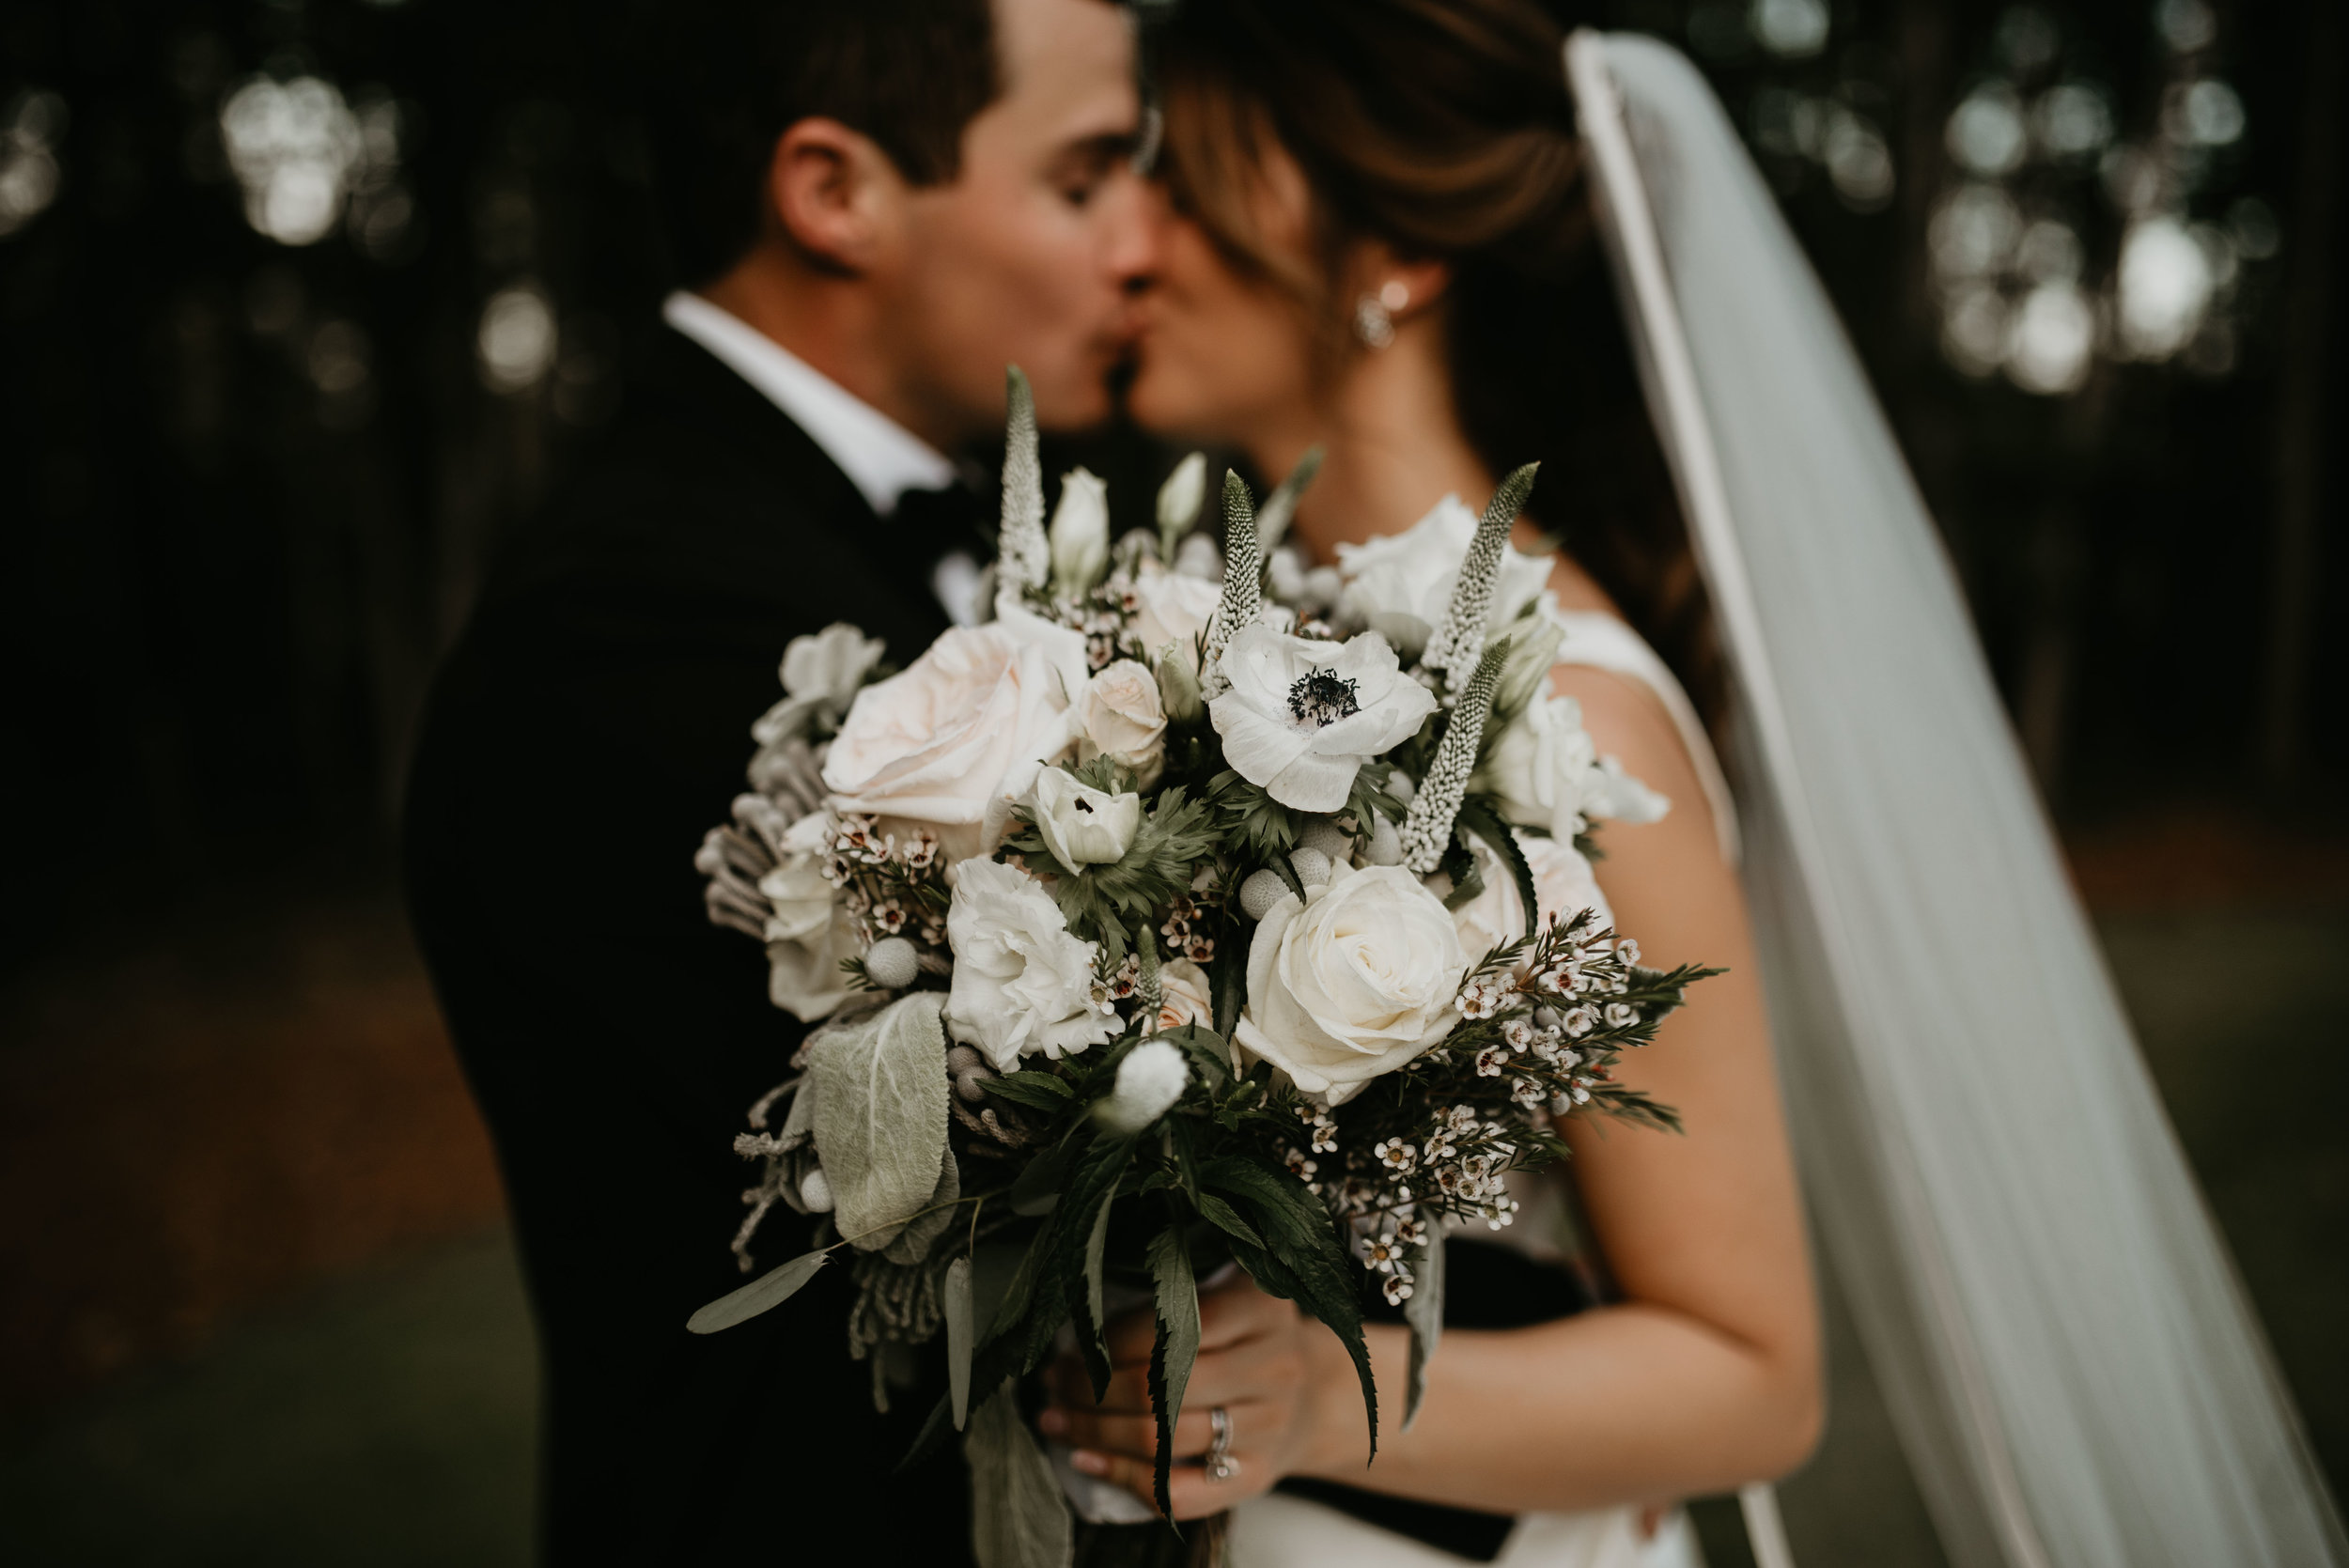 Bridal bouquet with bride and groom kissing in background